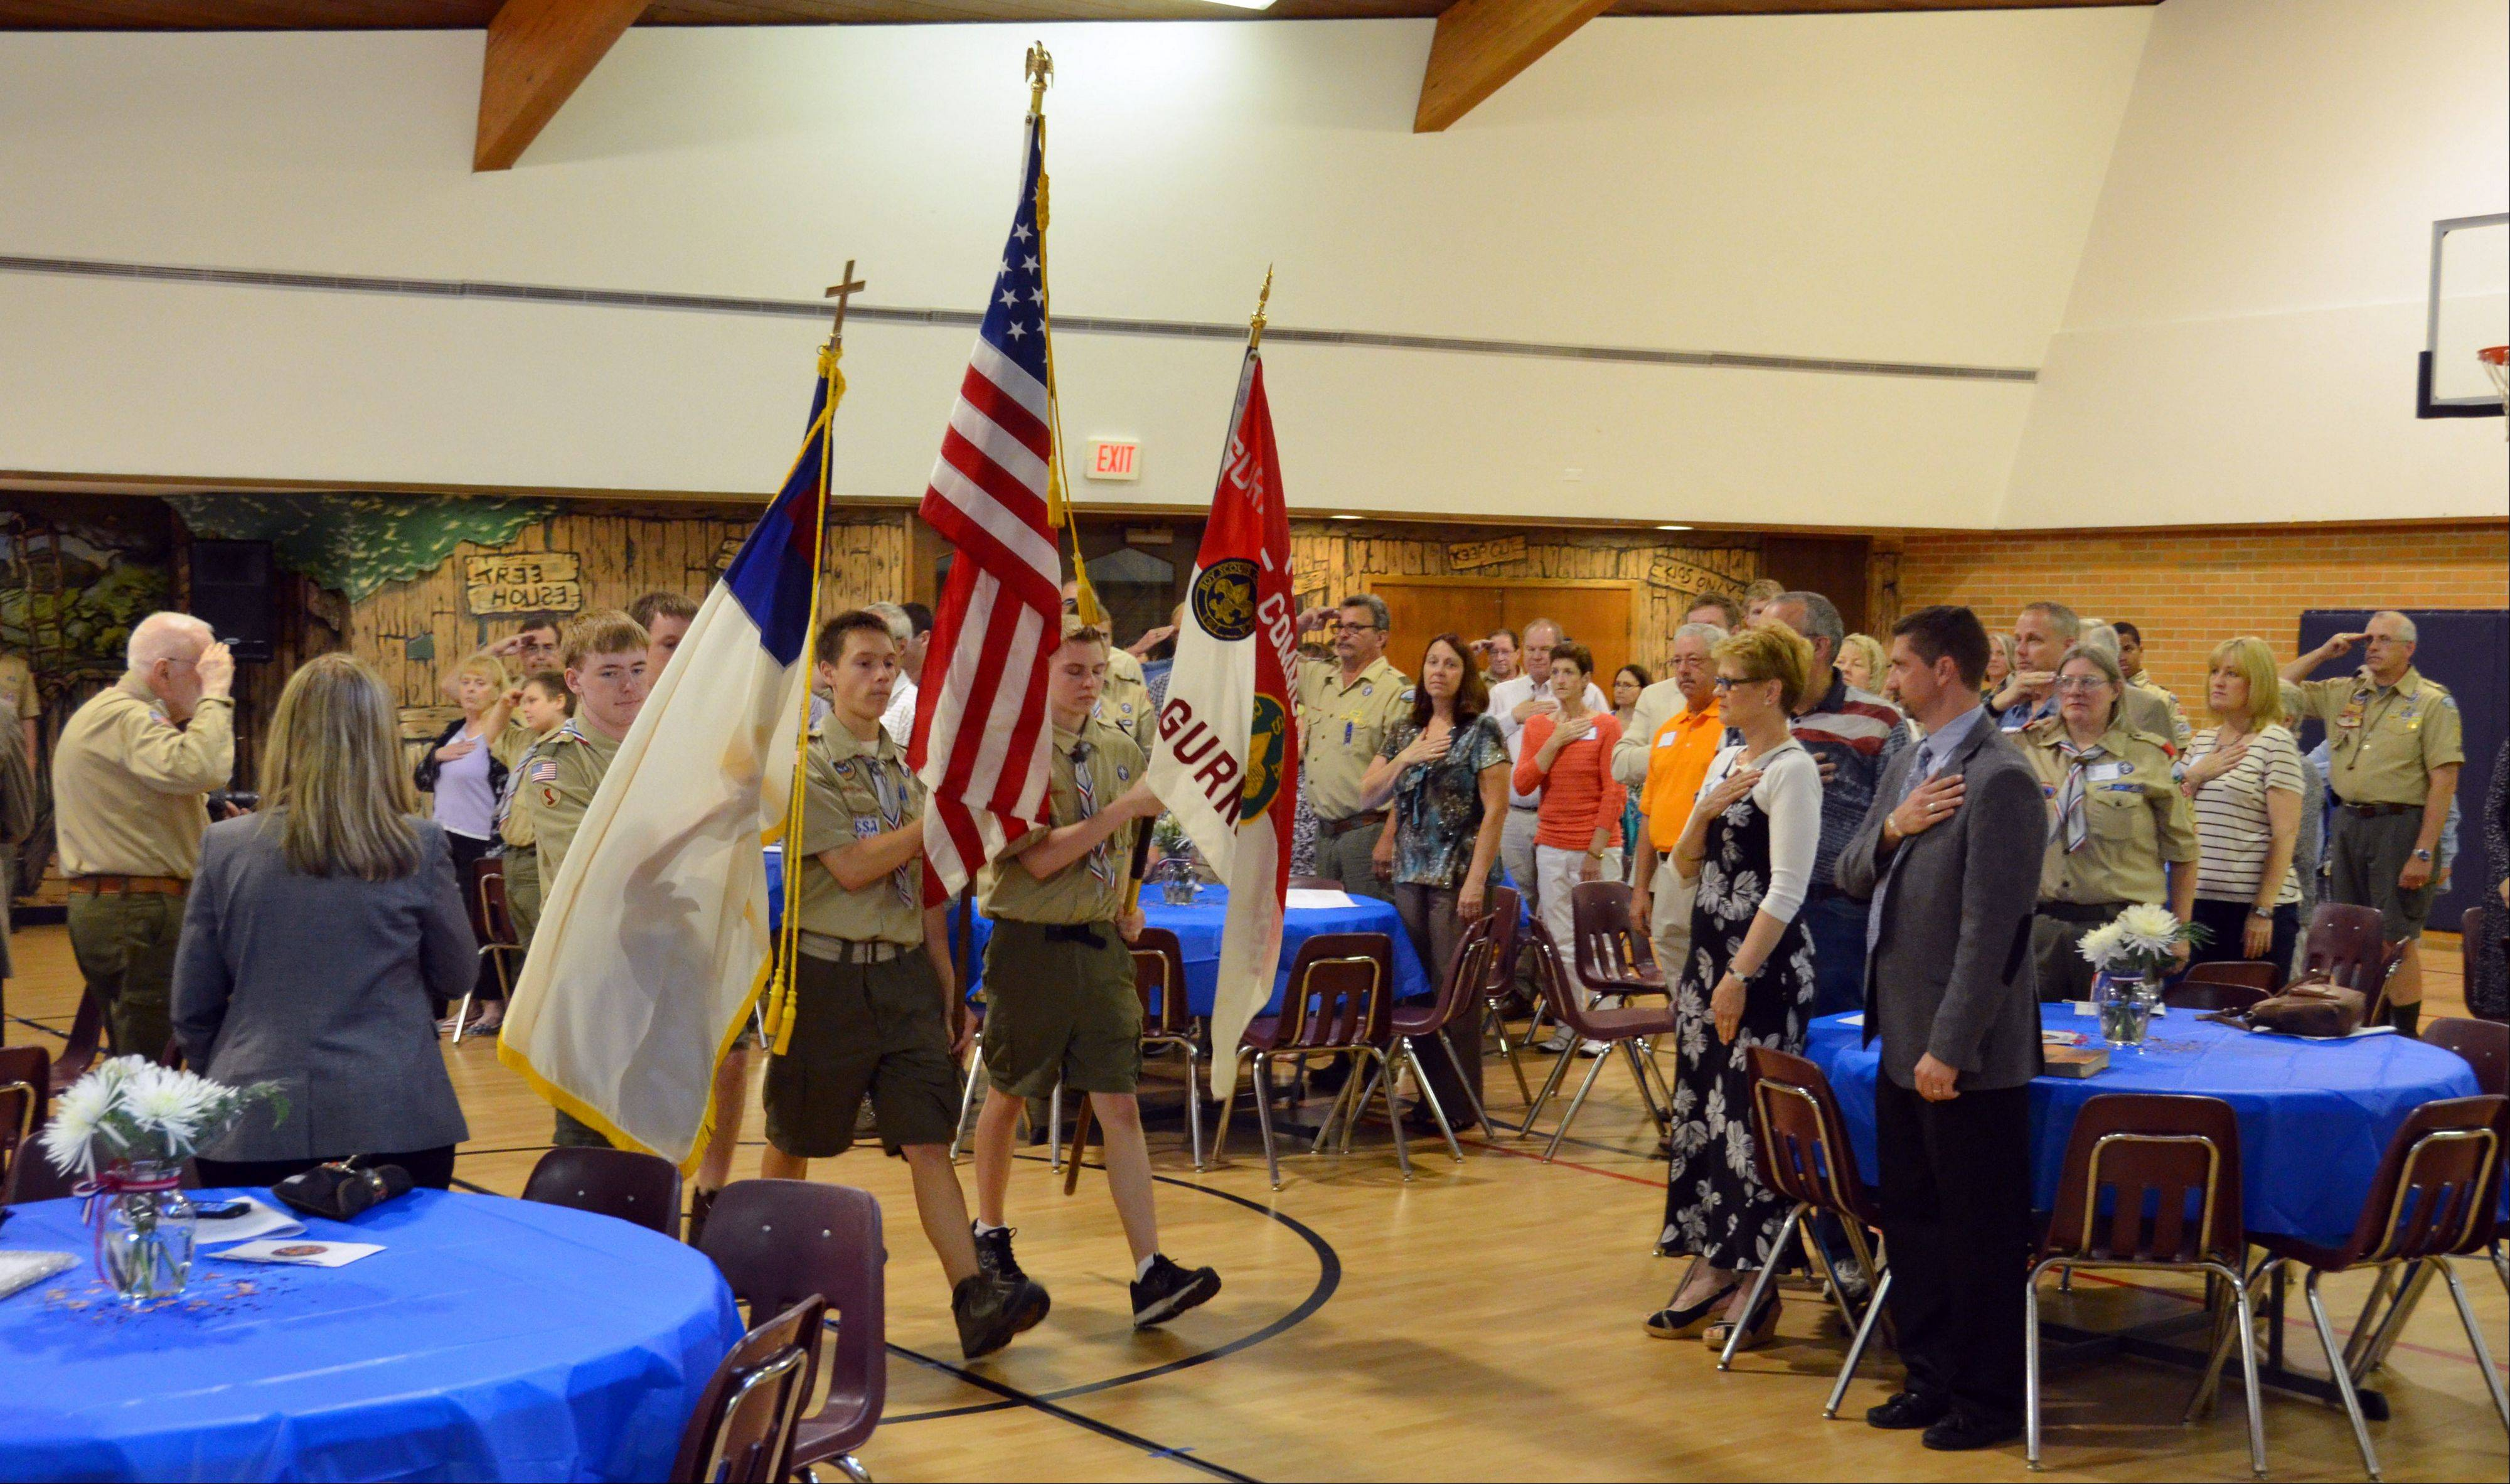 Gurnee Boy Scout Troop 677 start their 100 year anniversary celebration this year with a flag ceremony.